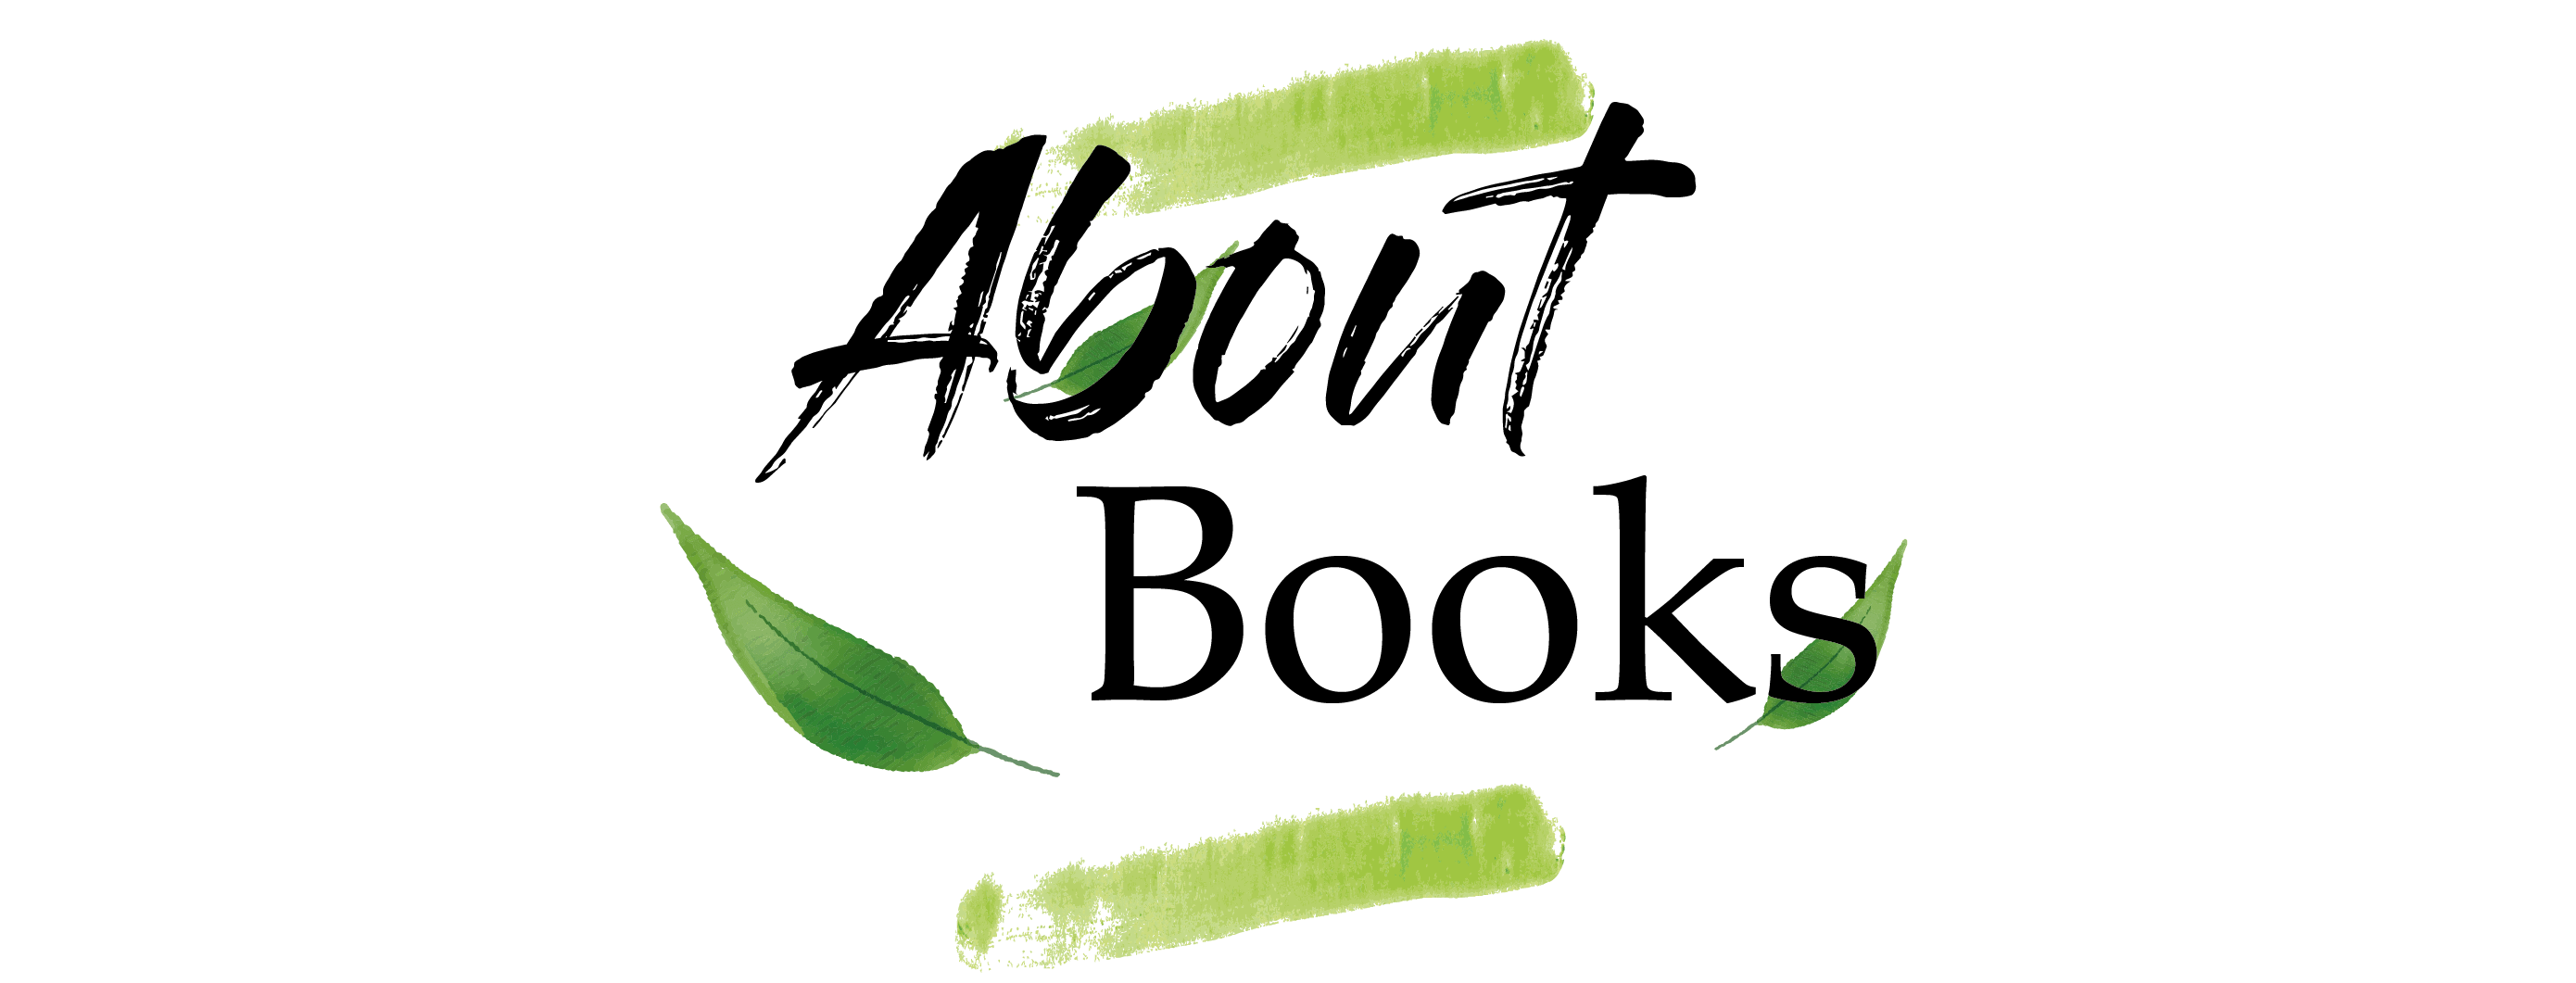 About_books-01